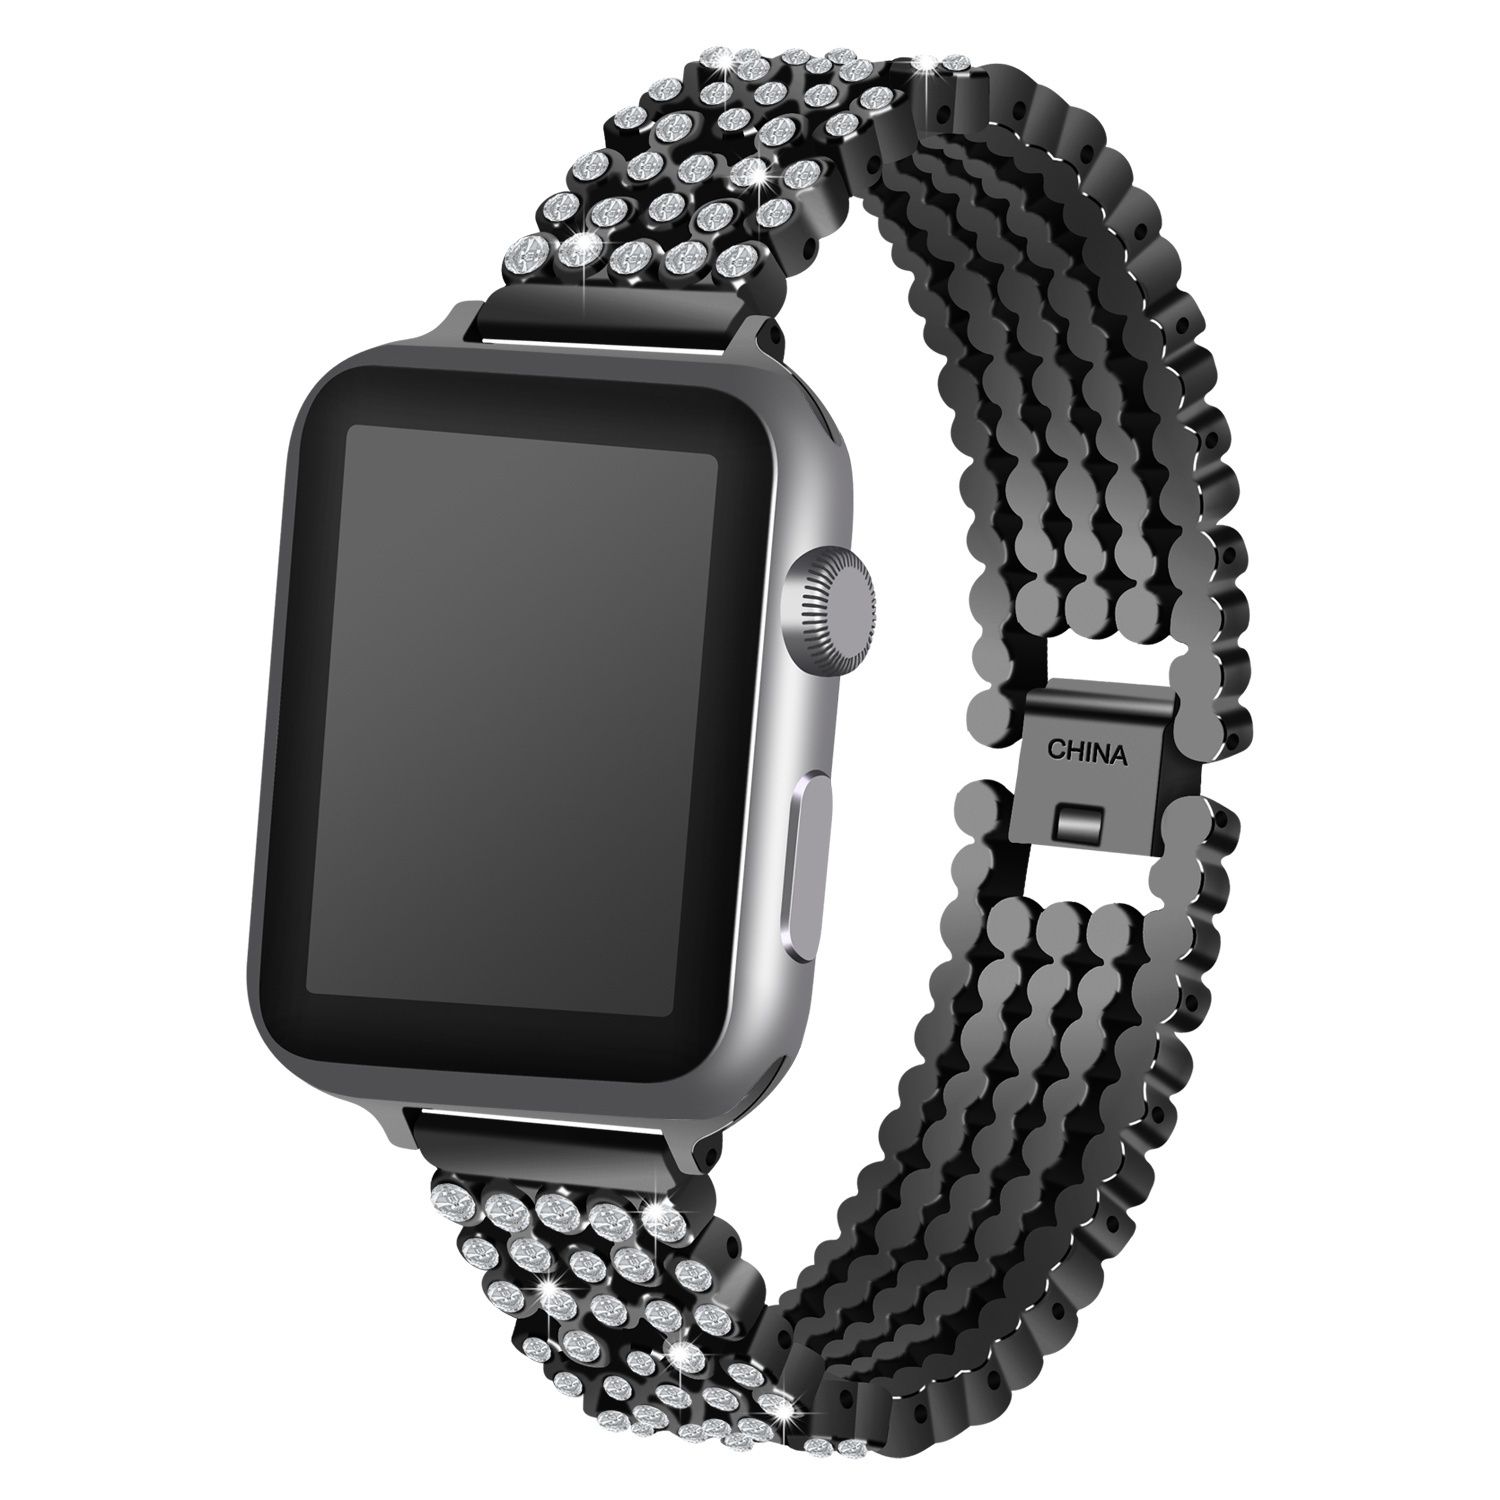 Image 2 - Crystal Diamond strap for Apple Watch band 38mm 42mm 40mm 44mm stainless steel Replacement Bands for iWatch series 5 4 3 2 1strap for apple watchreplacement strapstrap for -